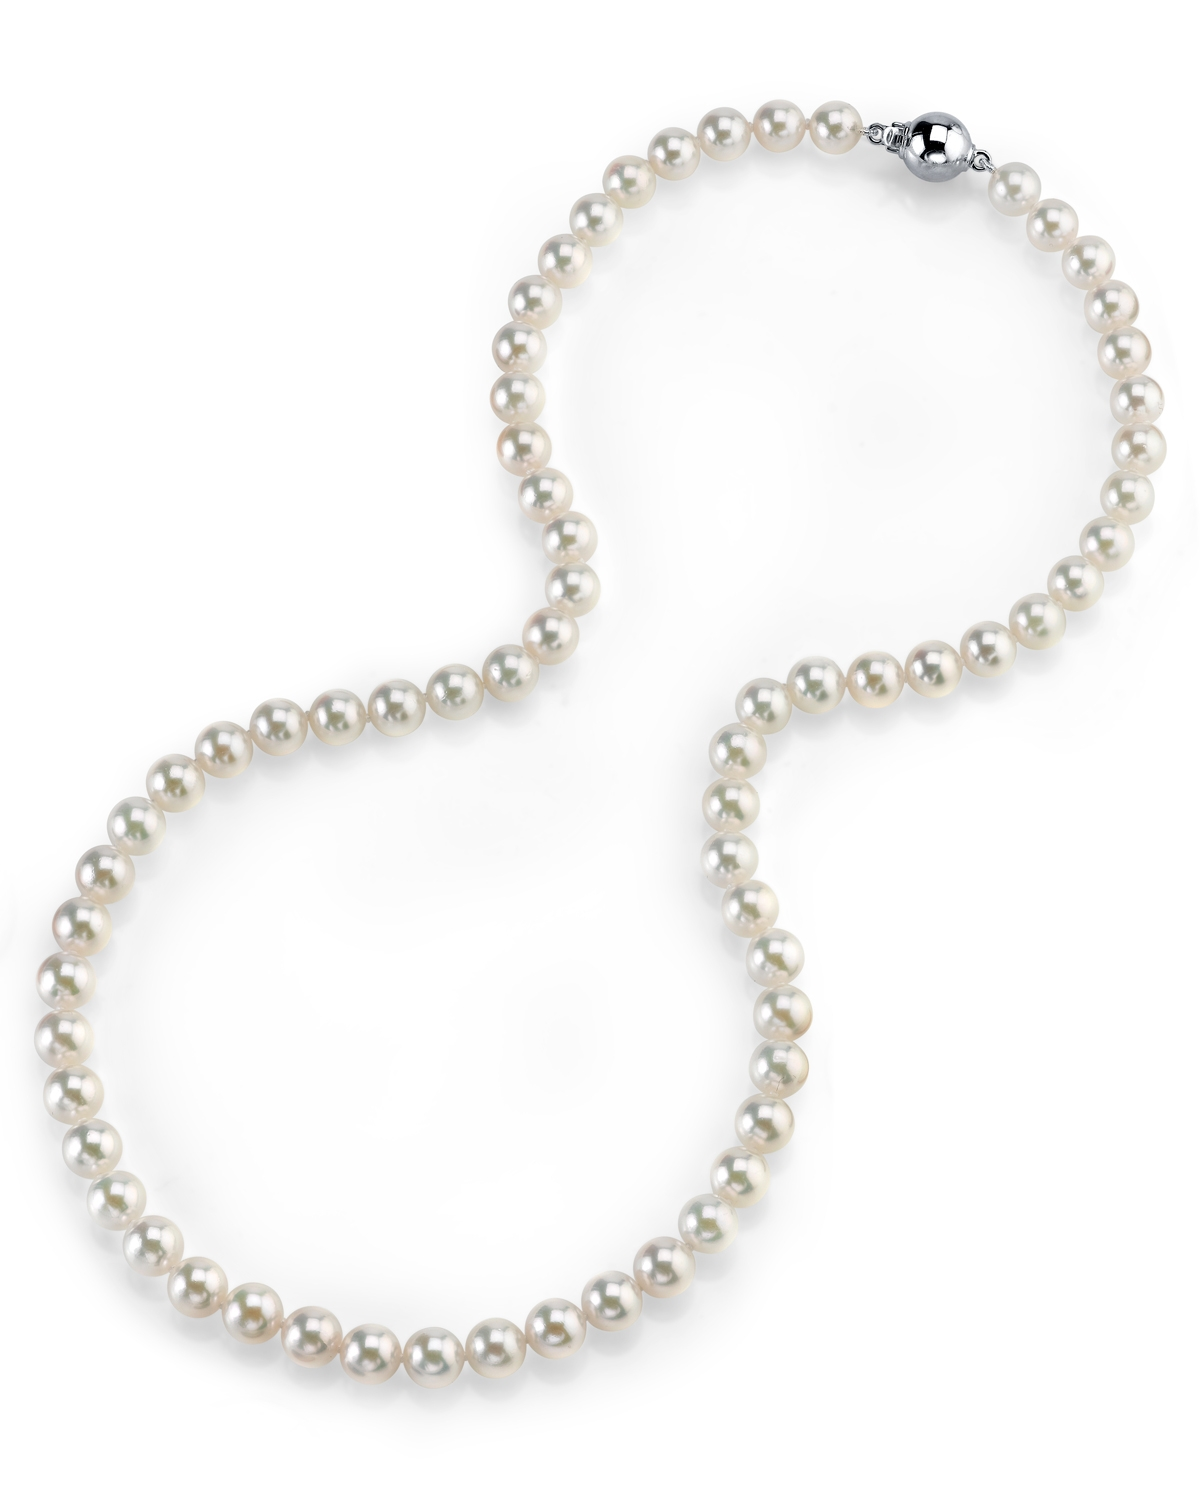 6.0-6.5mm Hanadama Akoya White Pearl Necklace